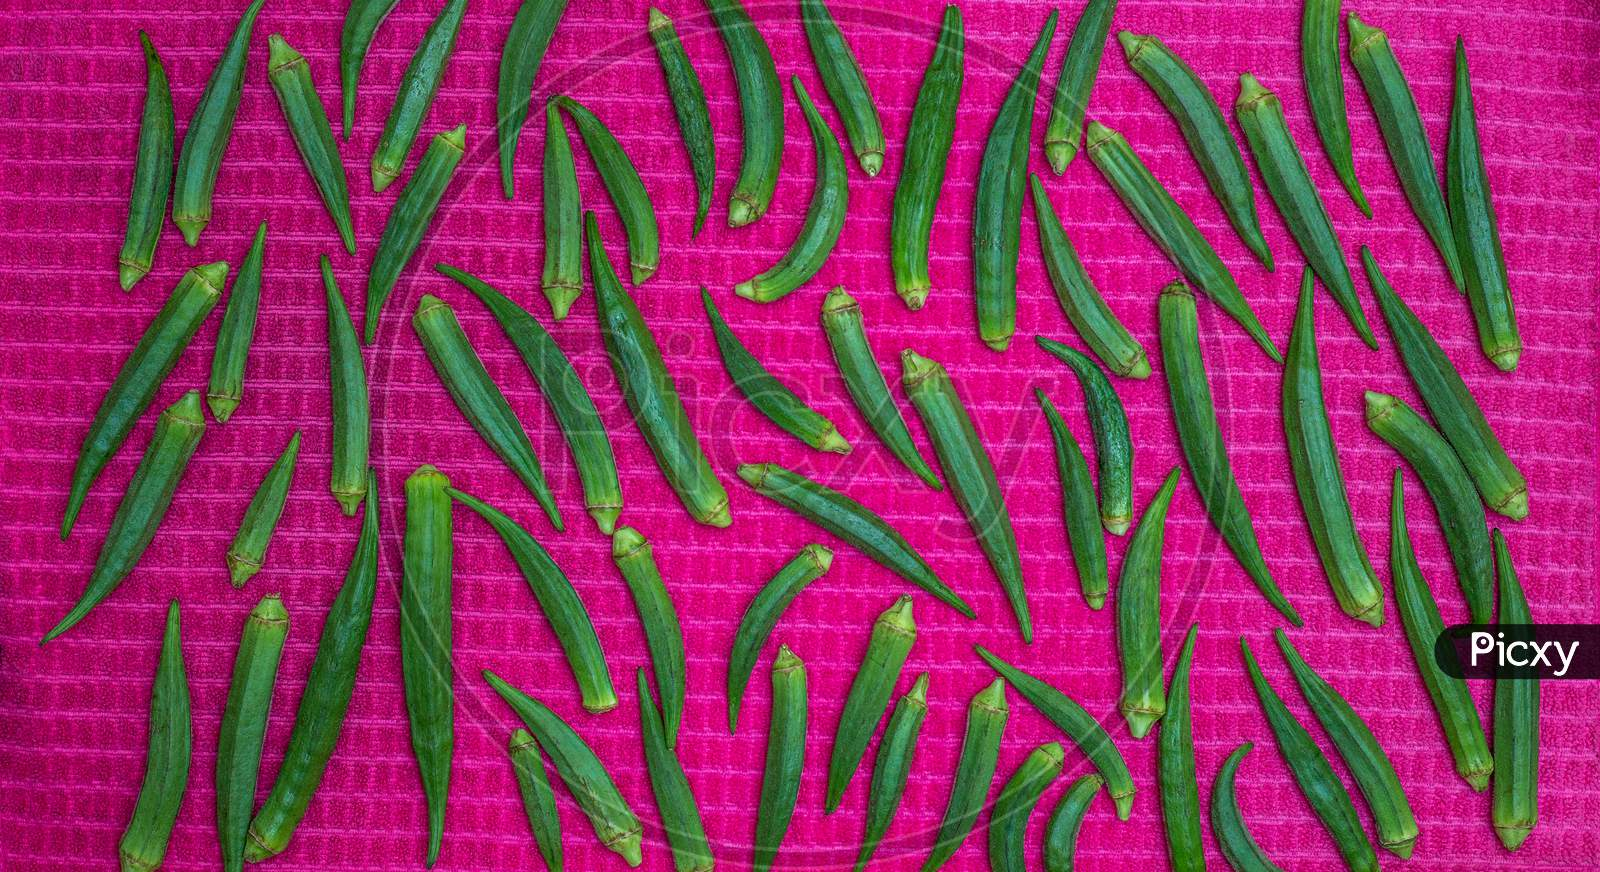 Green Lady Fingers Pattern From Top View, Okra Vegetable On Pink Cloth Background